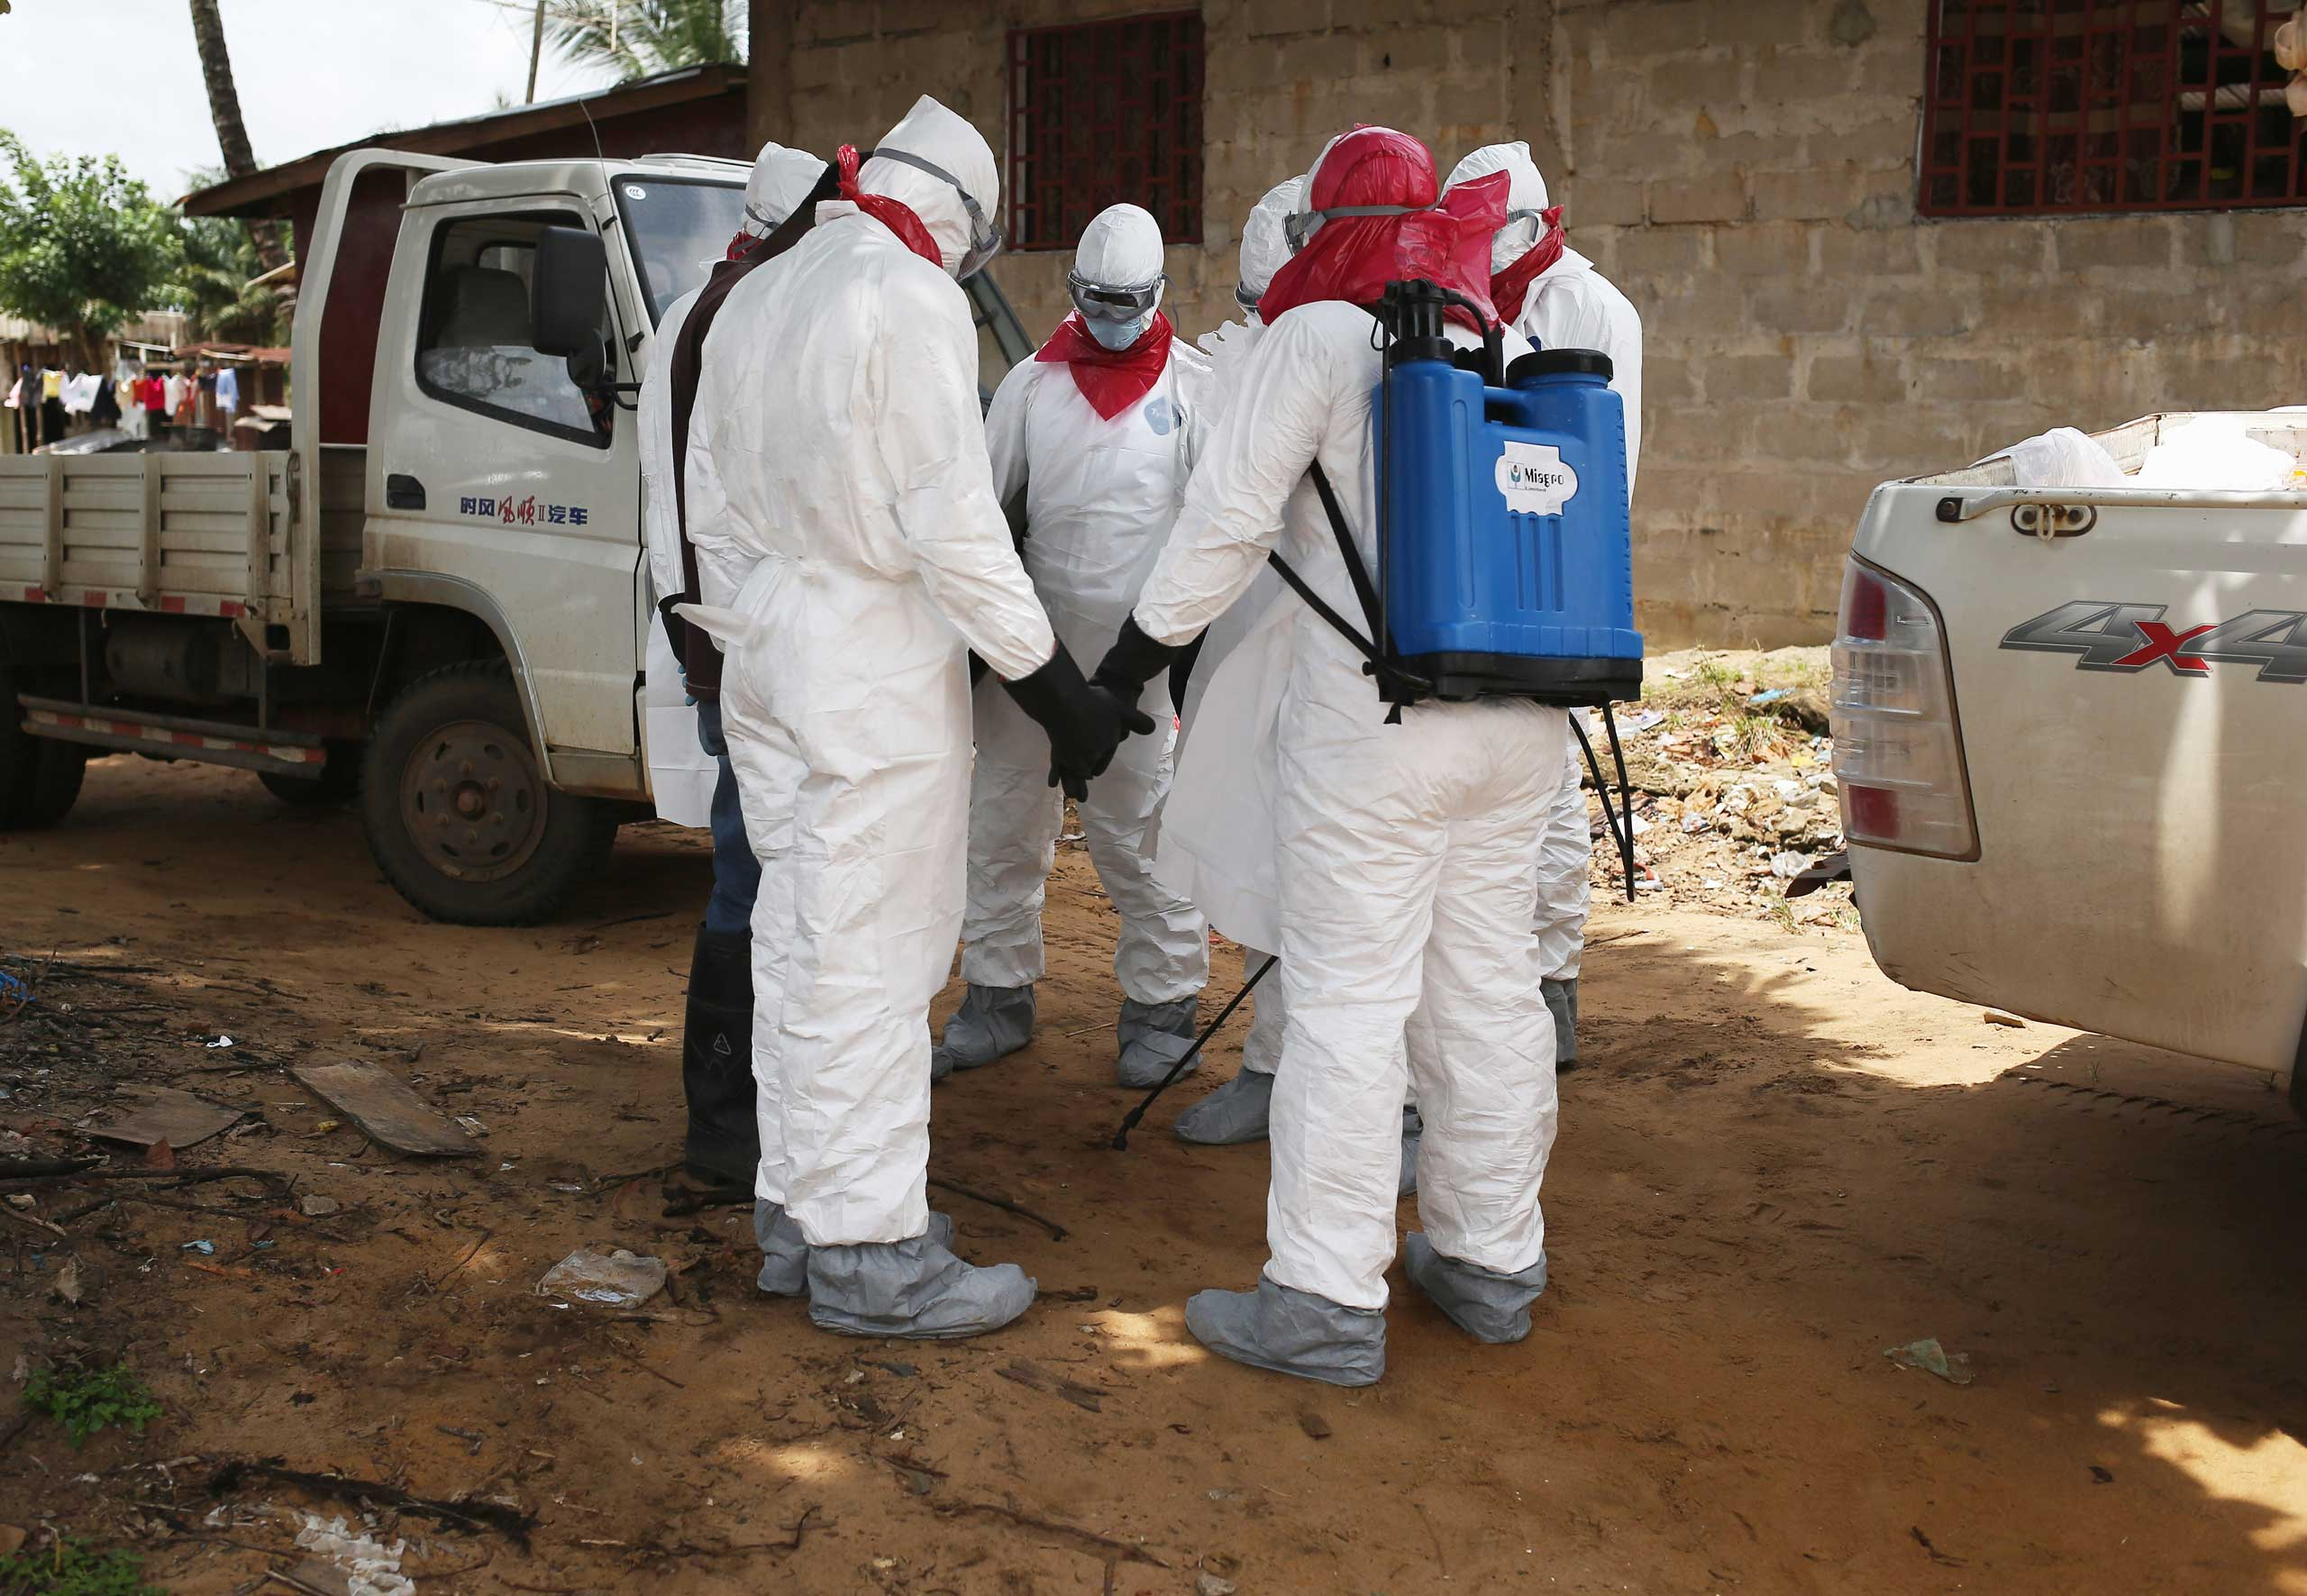 A burial team from the Liberian health department prays before entering a house to remove the body of a woman suspected of dying of the Ebola virus on Aug. 14, 2014 in Monrovia.